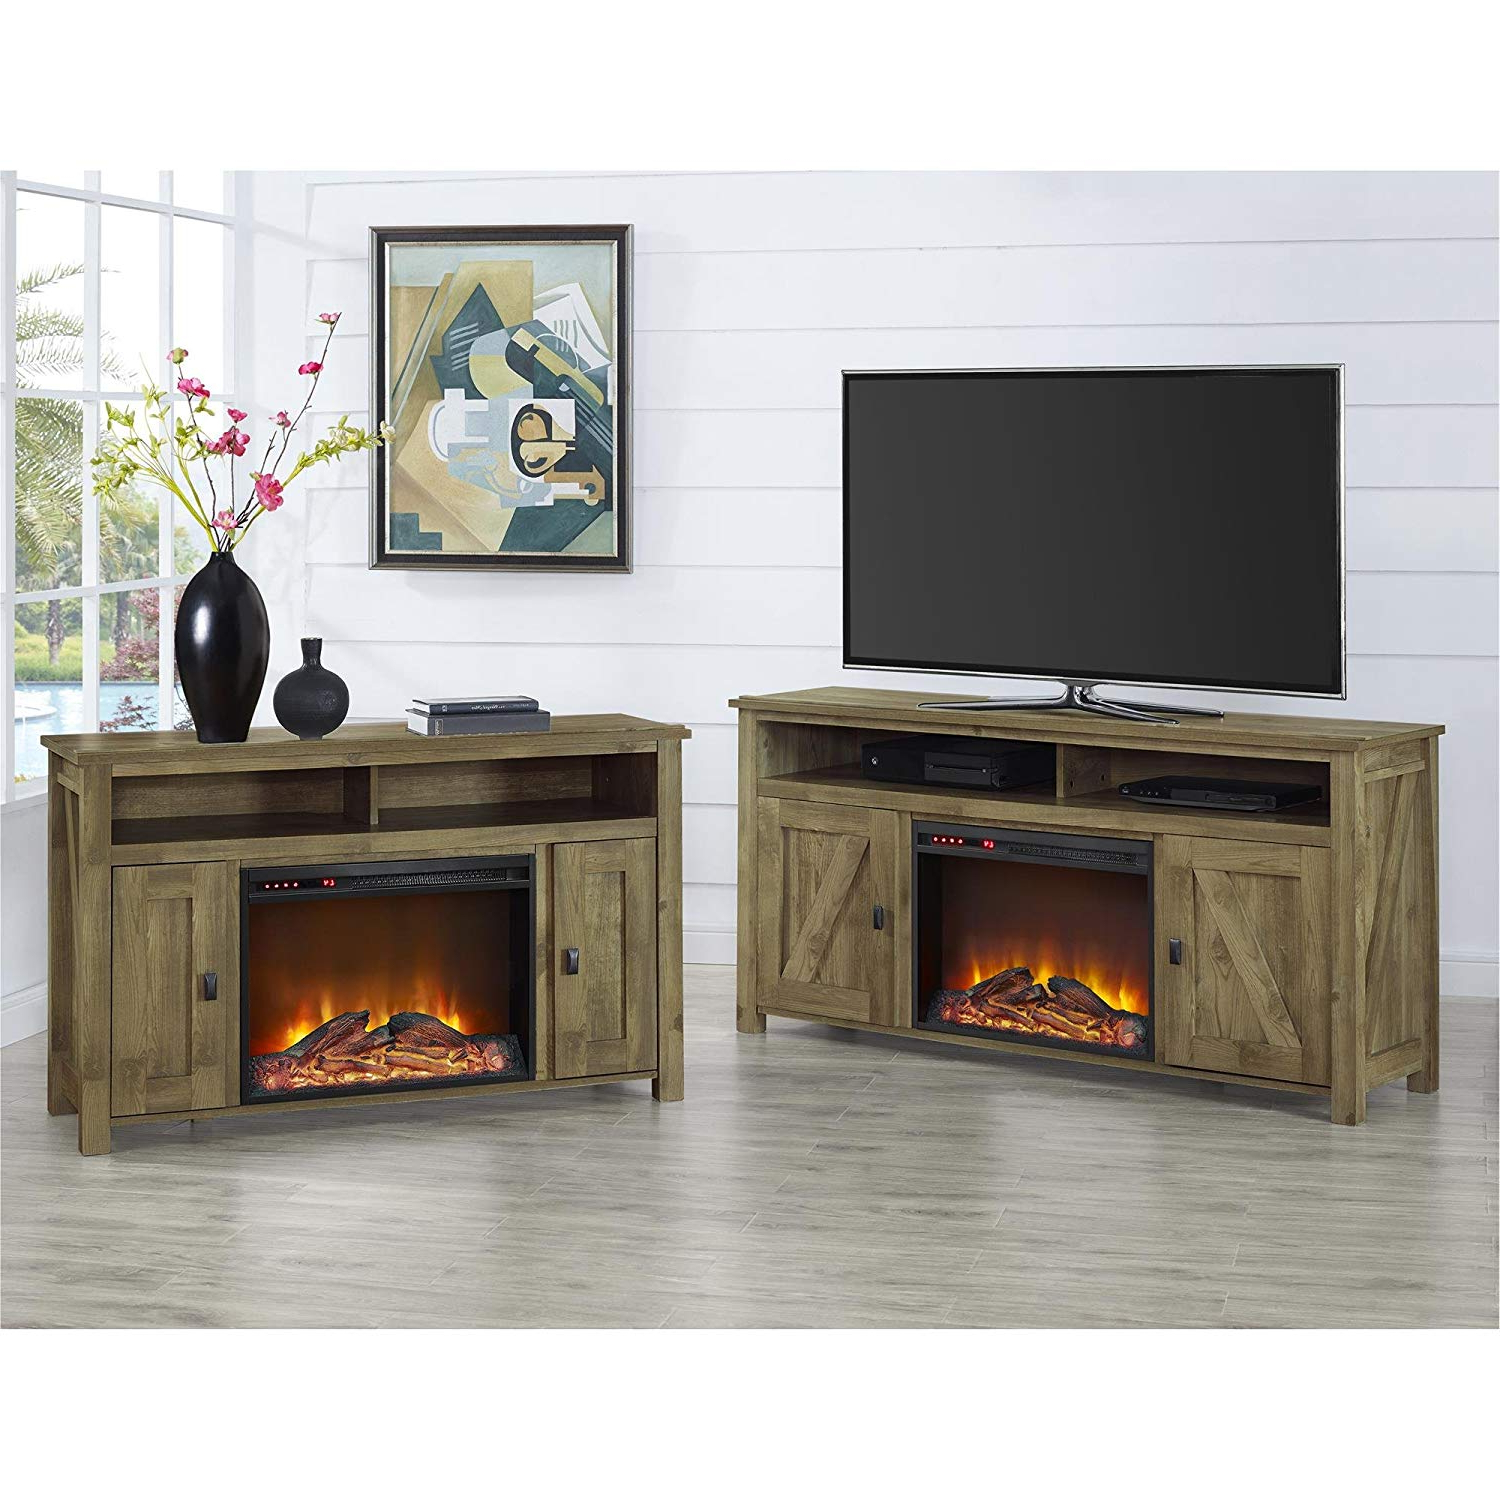 Ameriwood Home Farmington Electric Fireplace Tv Console For Tvs Up Inside Widely Used 50 Inch Fireplace Tv Stands (View 7 of 20)